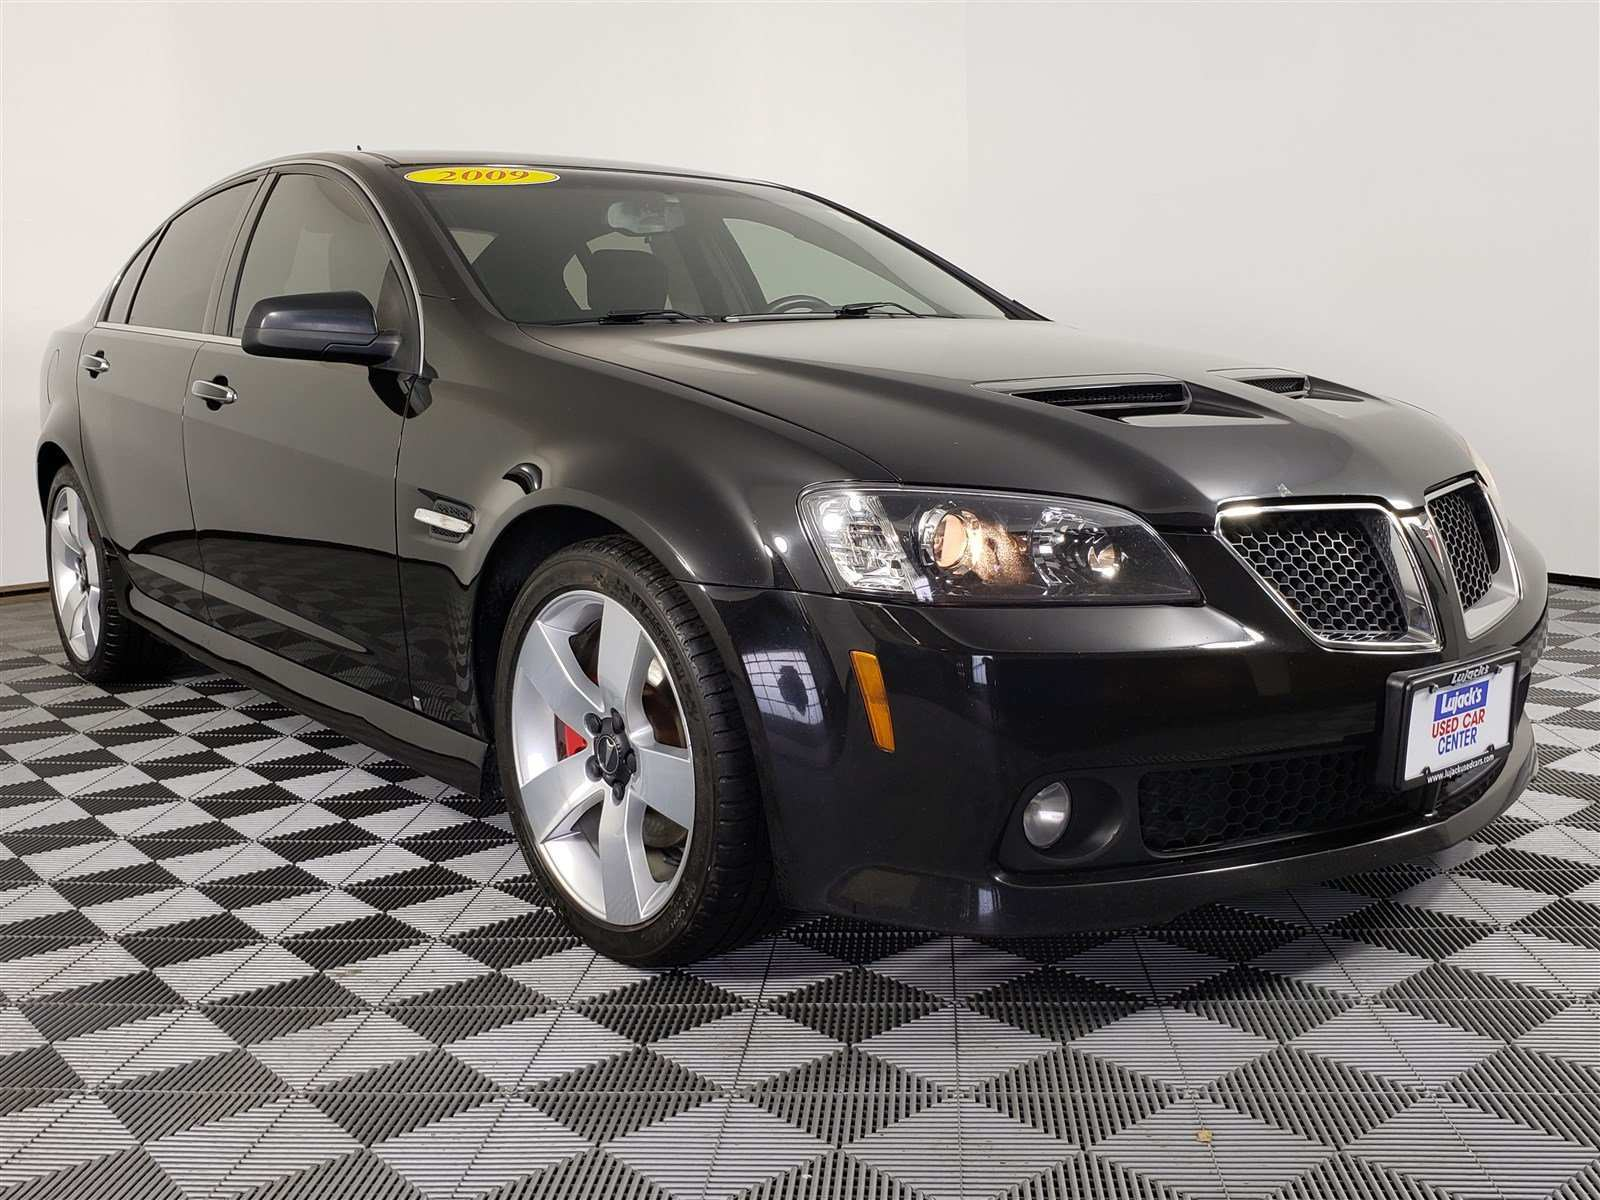 18 All New Pontiac G8 Images Prices by Pontiac G8 Images